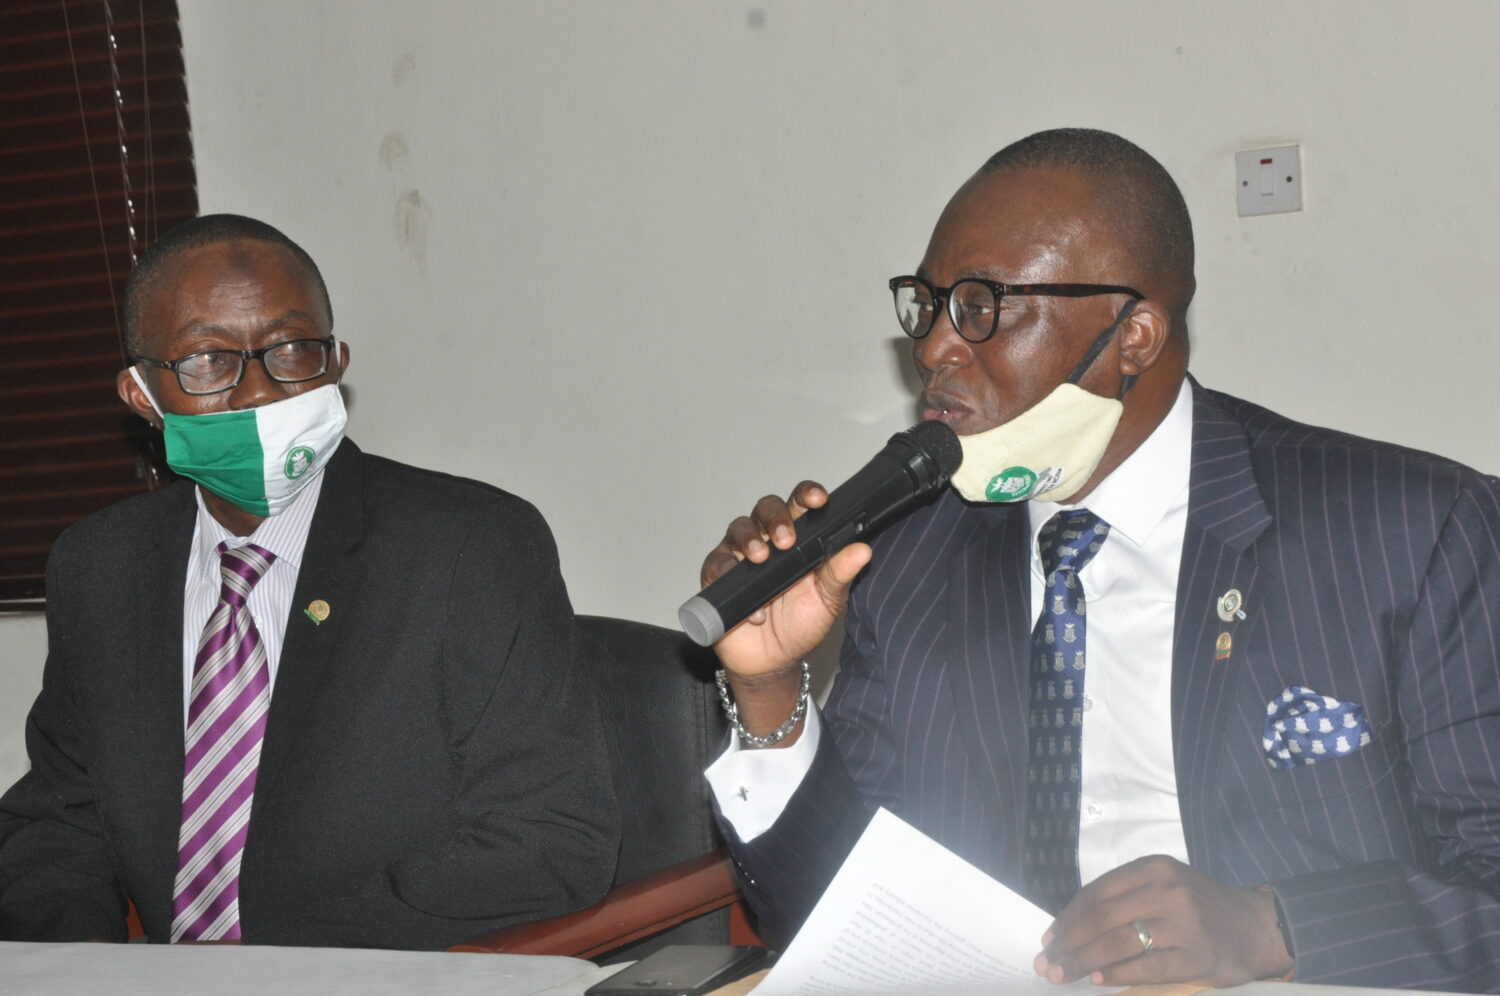 (L-r) Fatai Adegbenro, Executive Secretary/CEO, Nigerian Council of Registered Insurance Brokers (NCRIB) and Tunde Oguntade, Vice President/representative of President,  NCRIB, during the annual general meeting of the National Association of Insurance and Pension Correspondents in Lagos on Wednesday. 29/7/2020